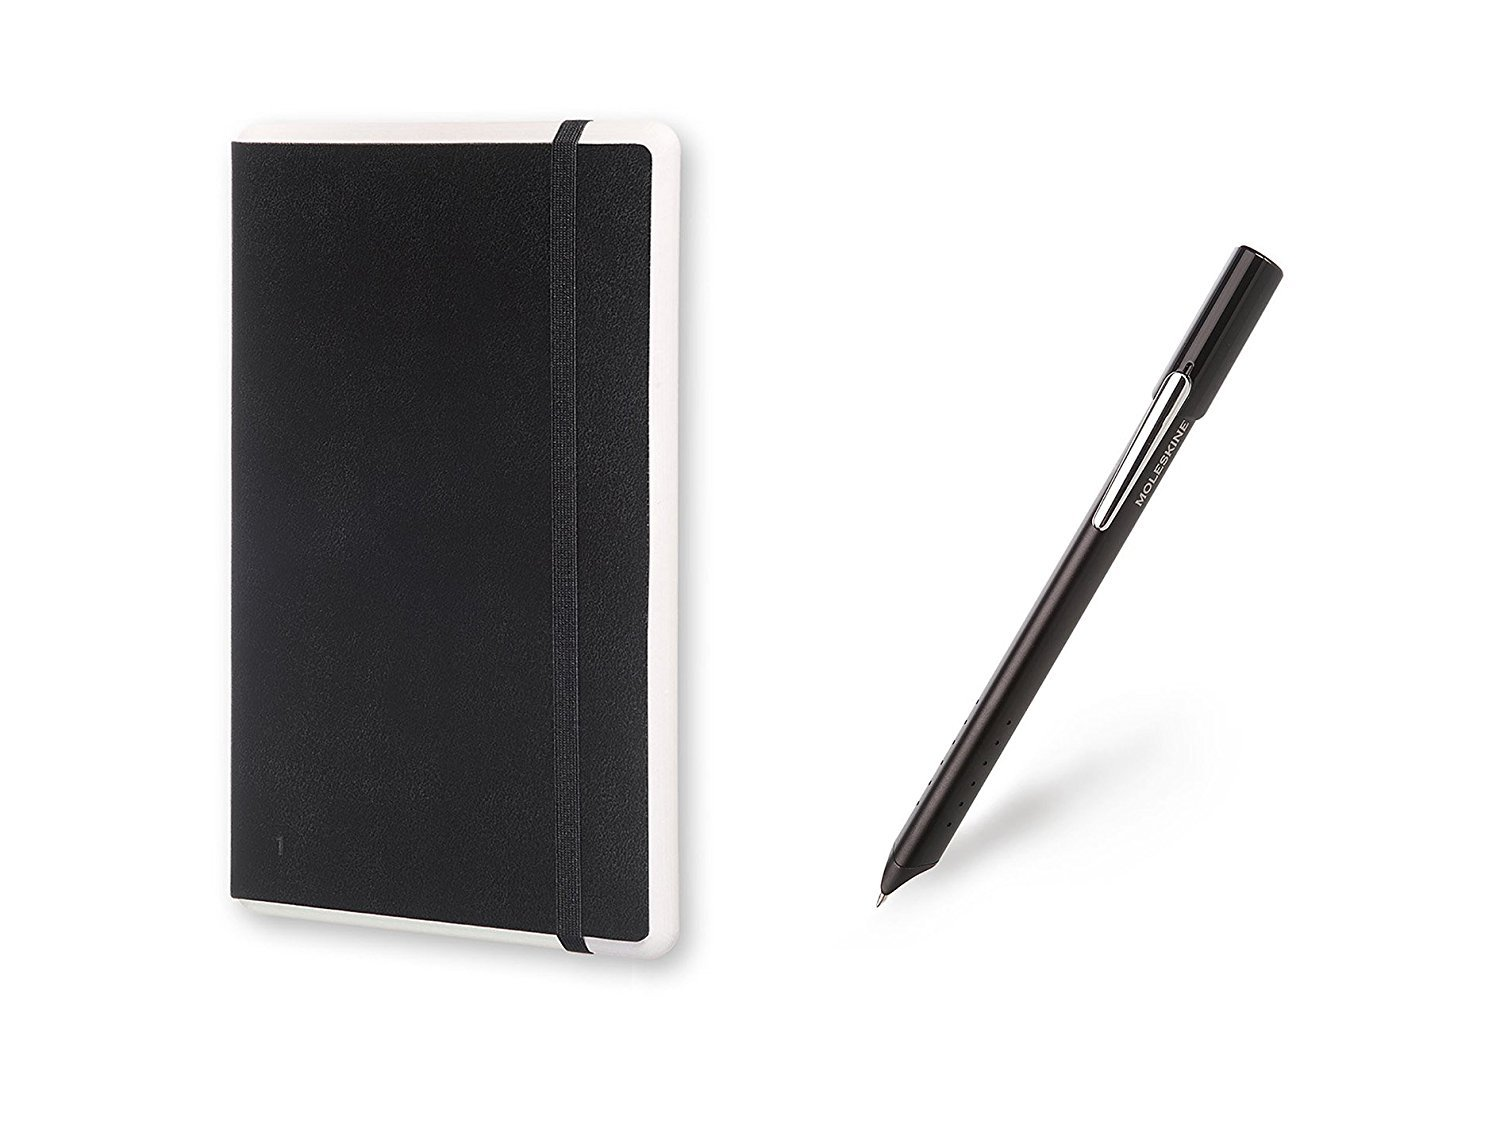 Moleskine smart writing set notebook with smart pen (PTSETA)